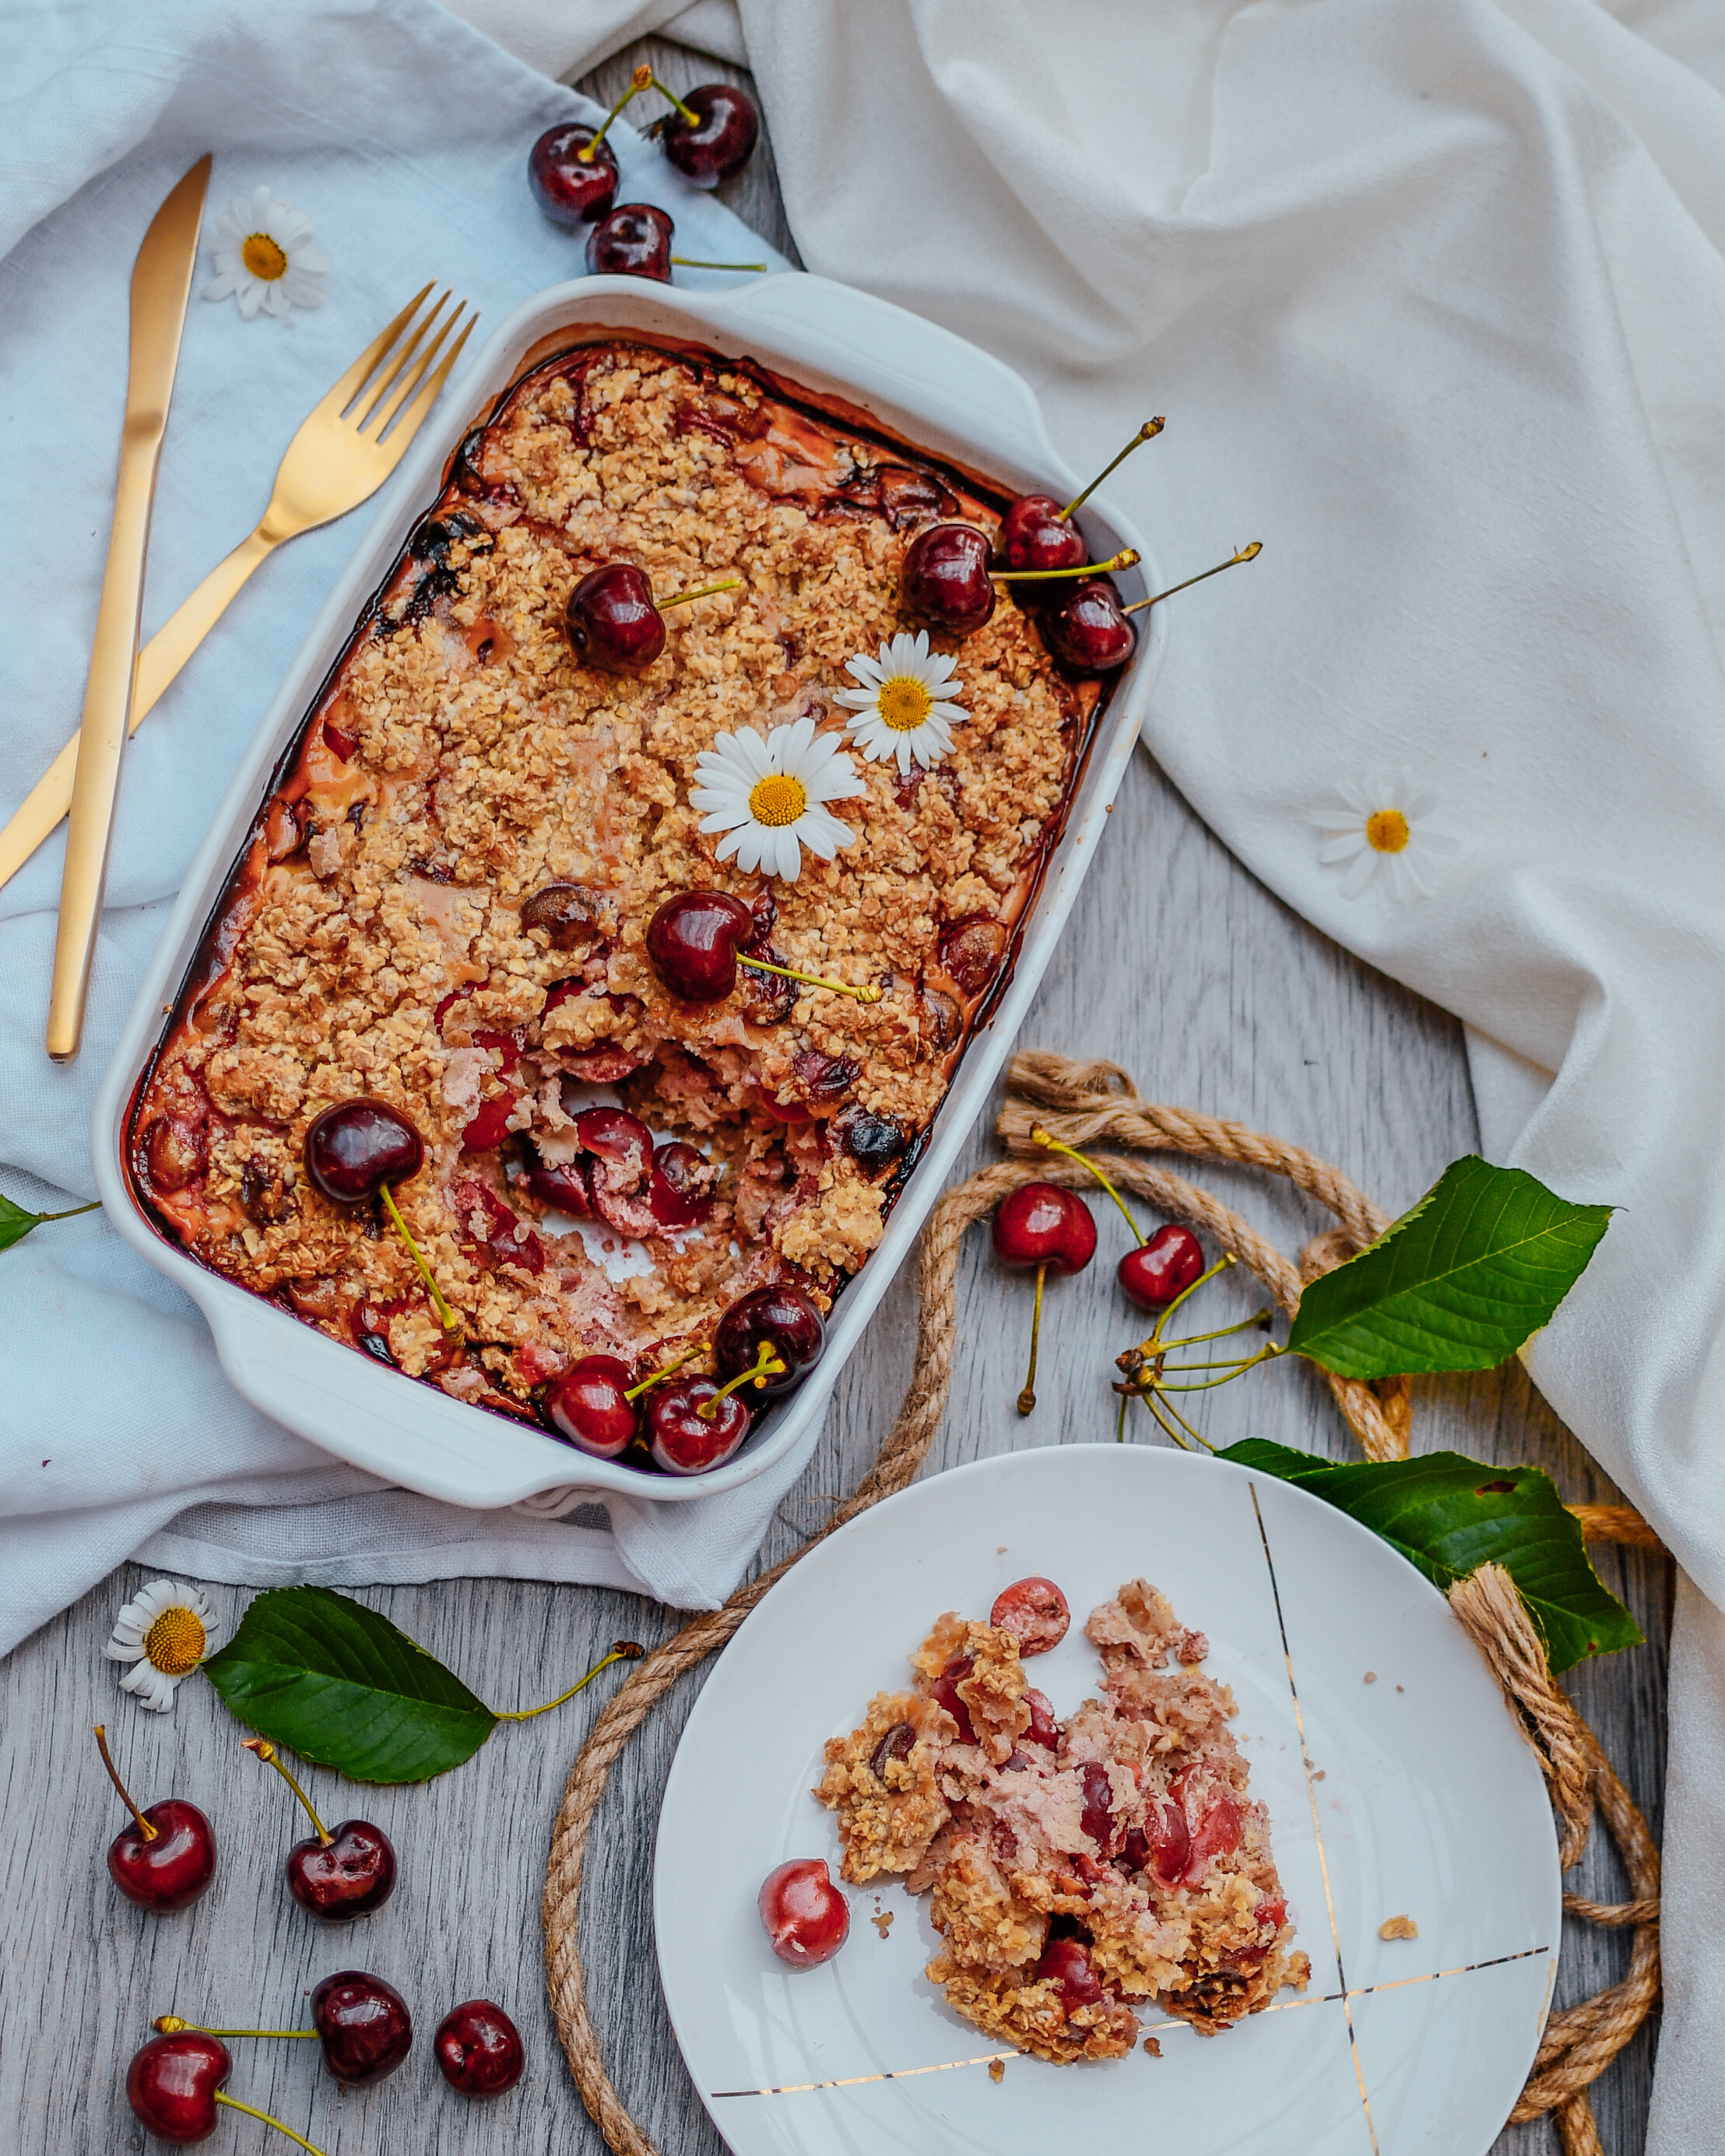 Healthy crumble with cherries